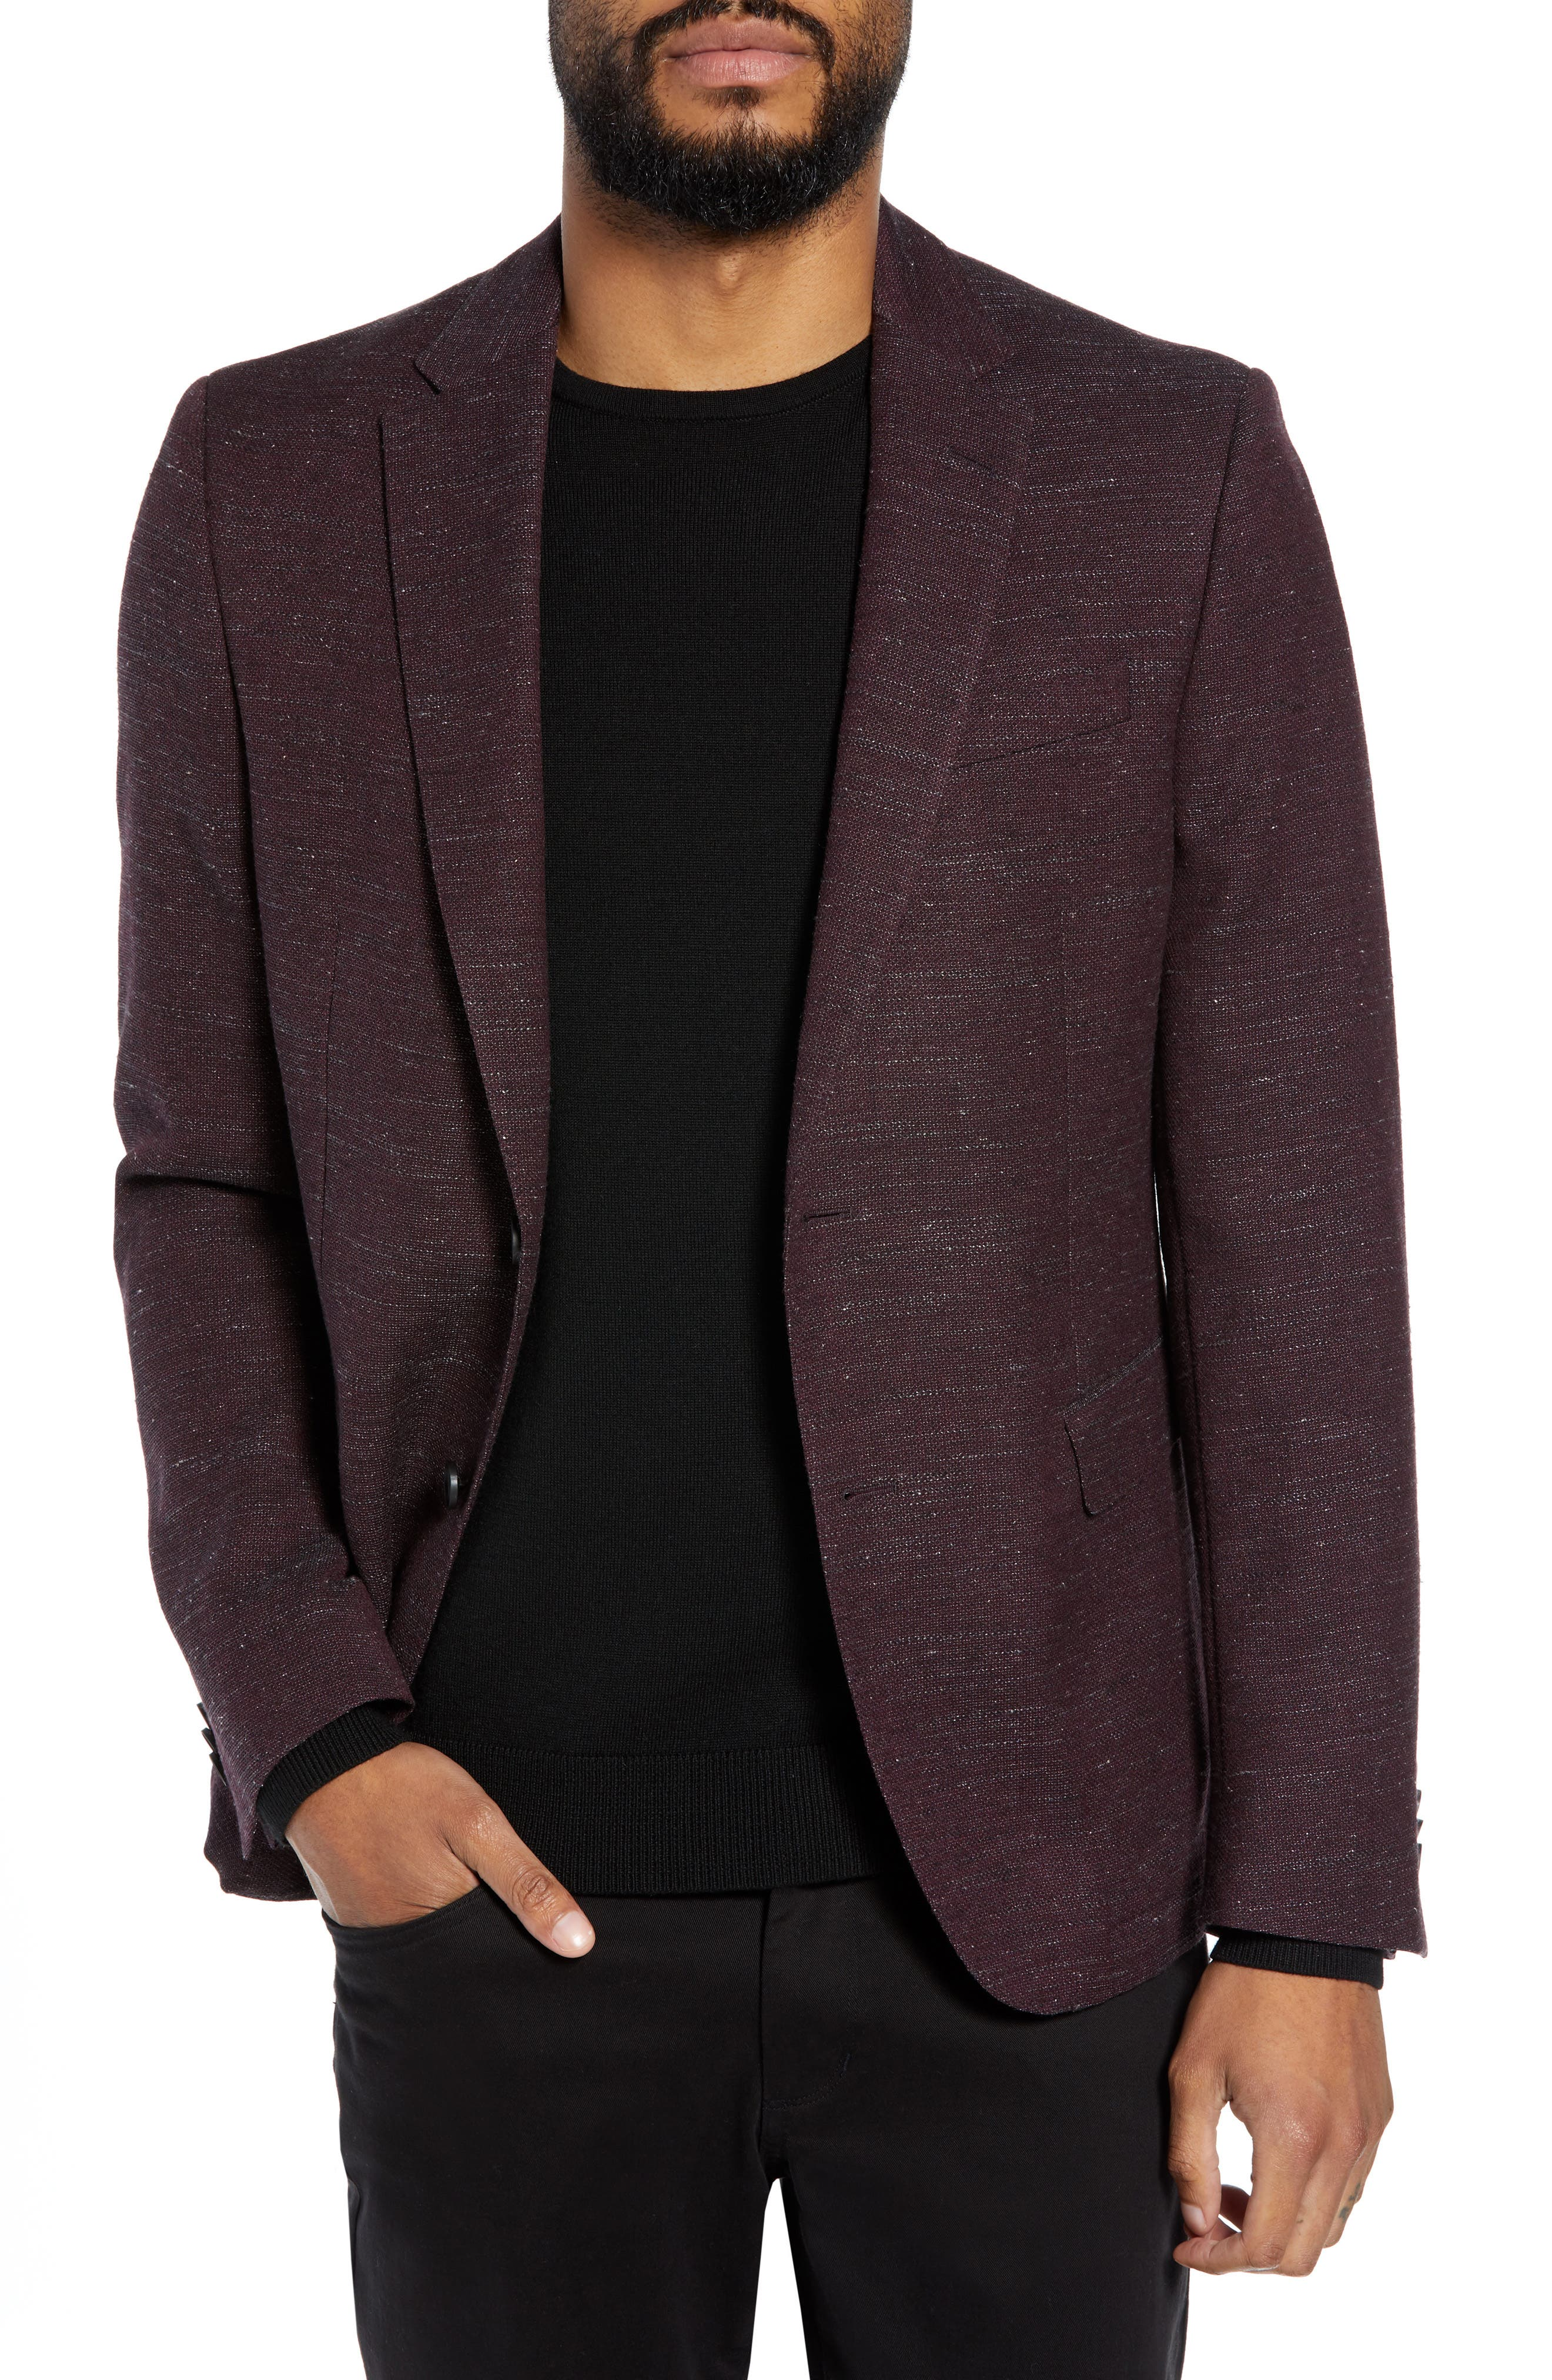 Nobis Trim Fit Wool Blend Blazer,                             Main thumbnail 1, color,                             DARK RED